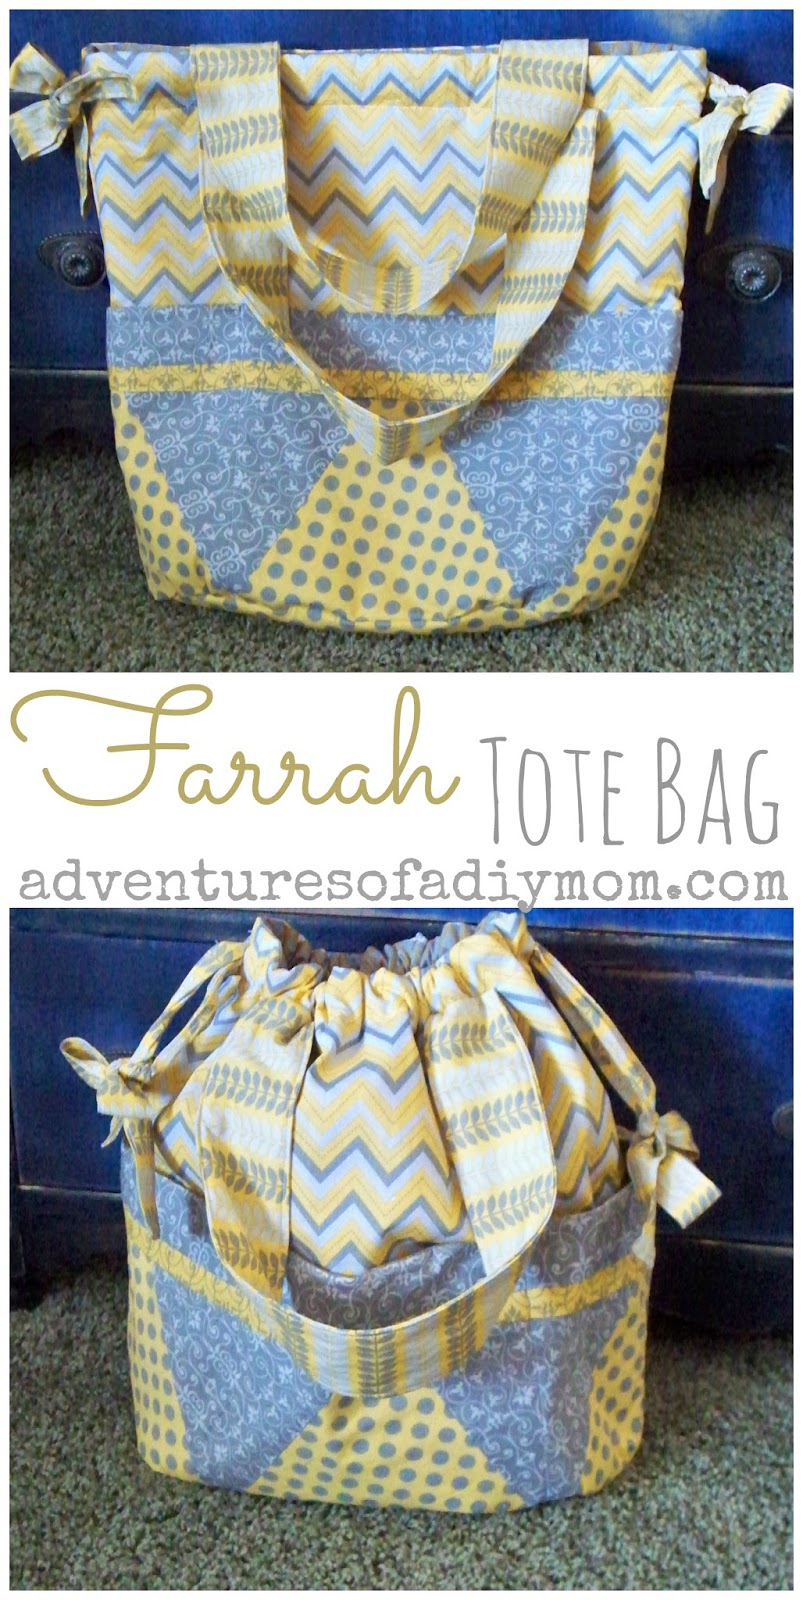 The Farrah Tote Bag